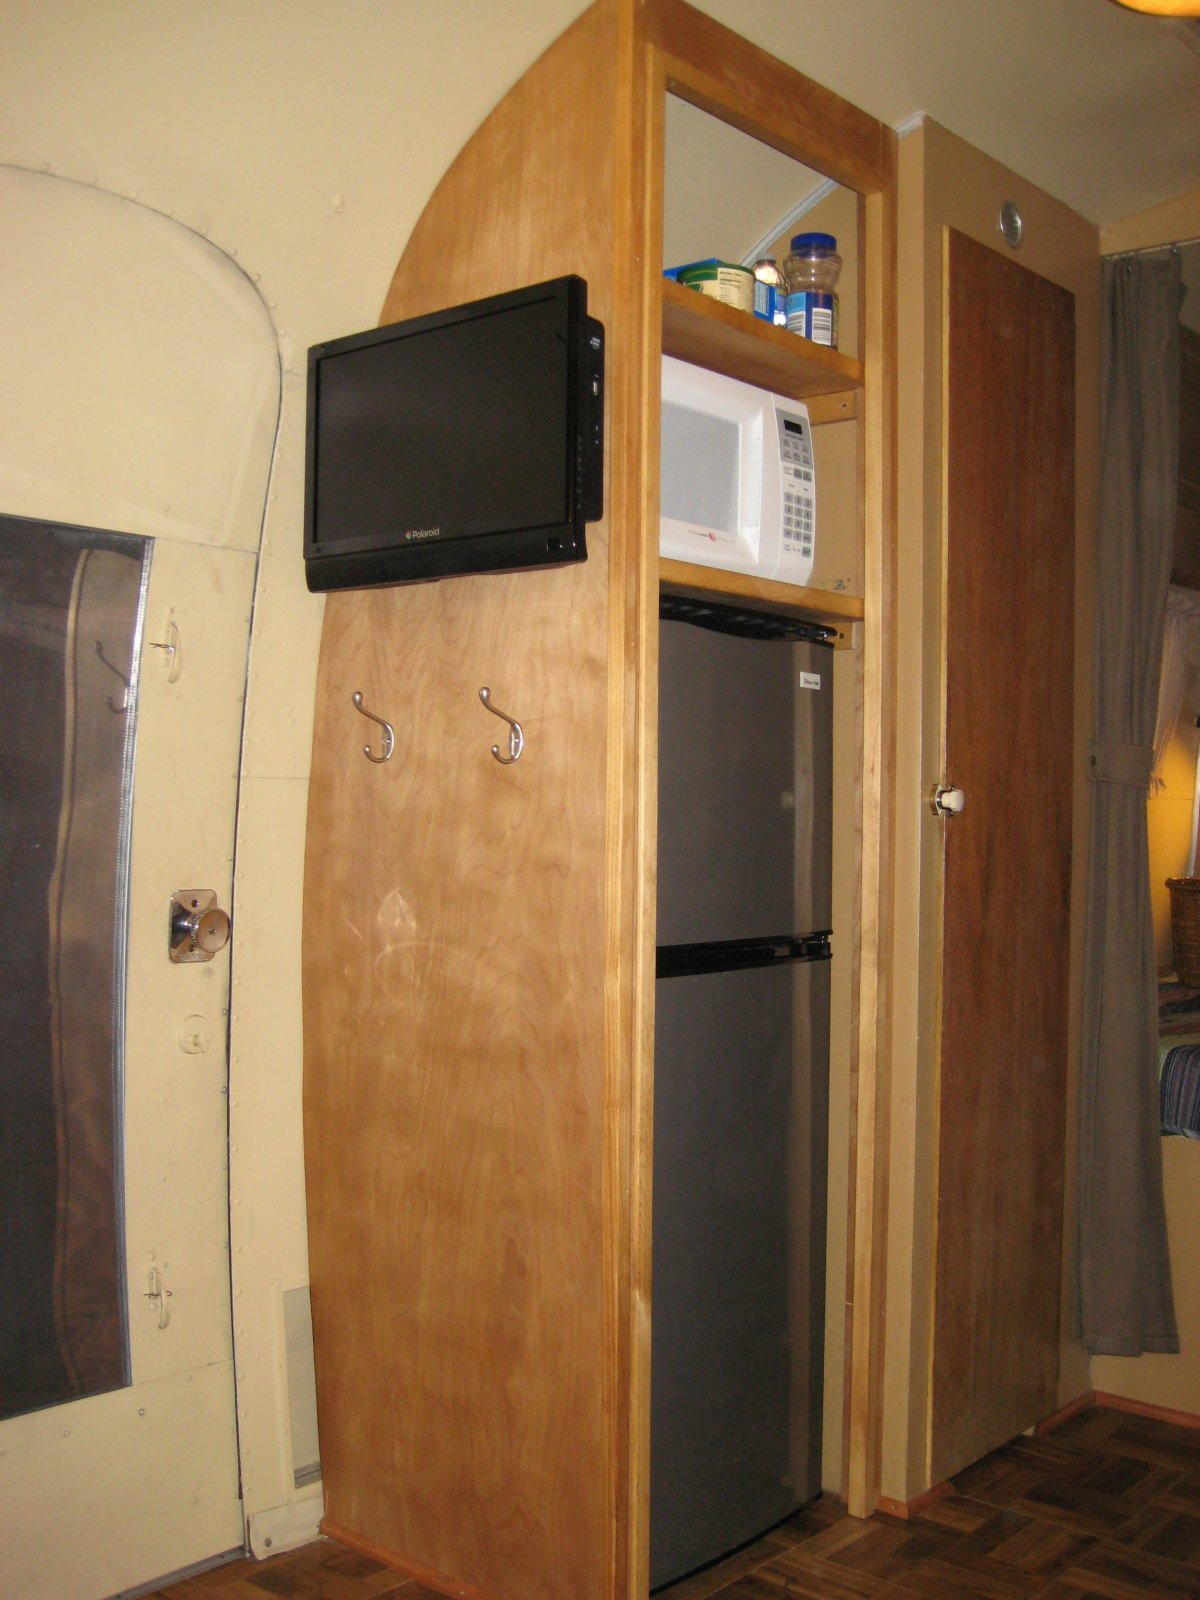 Click image for larger version  Name:Airstream 004.jpg Views:72 Size:214.3 KB ID:98302